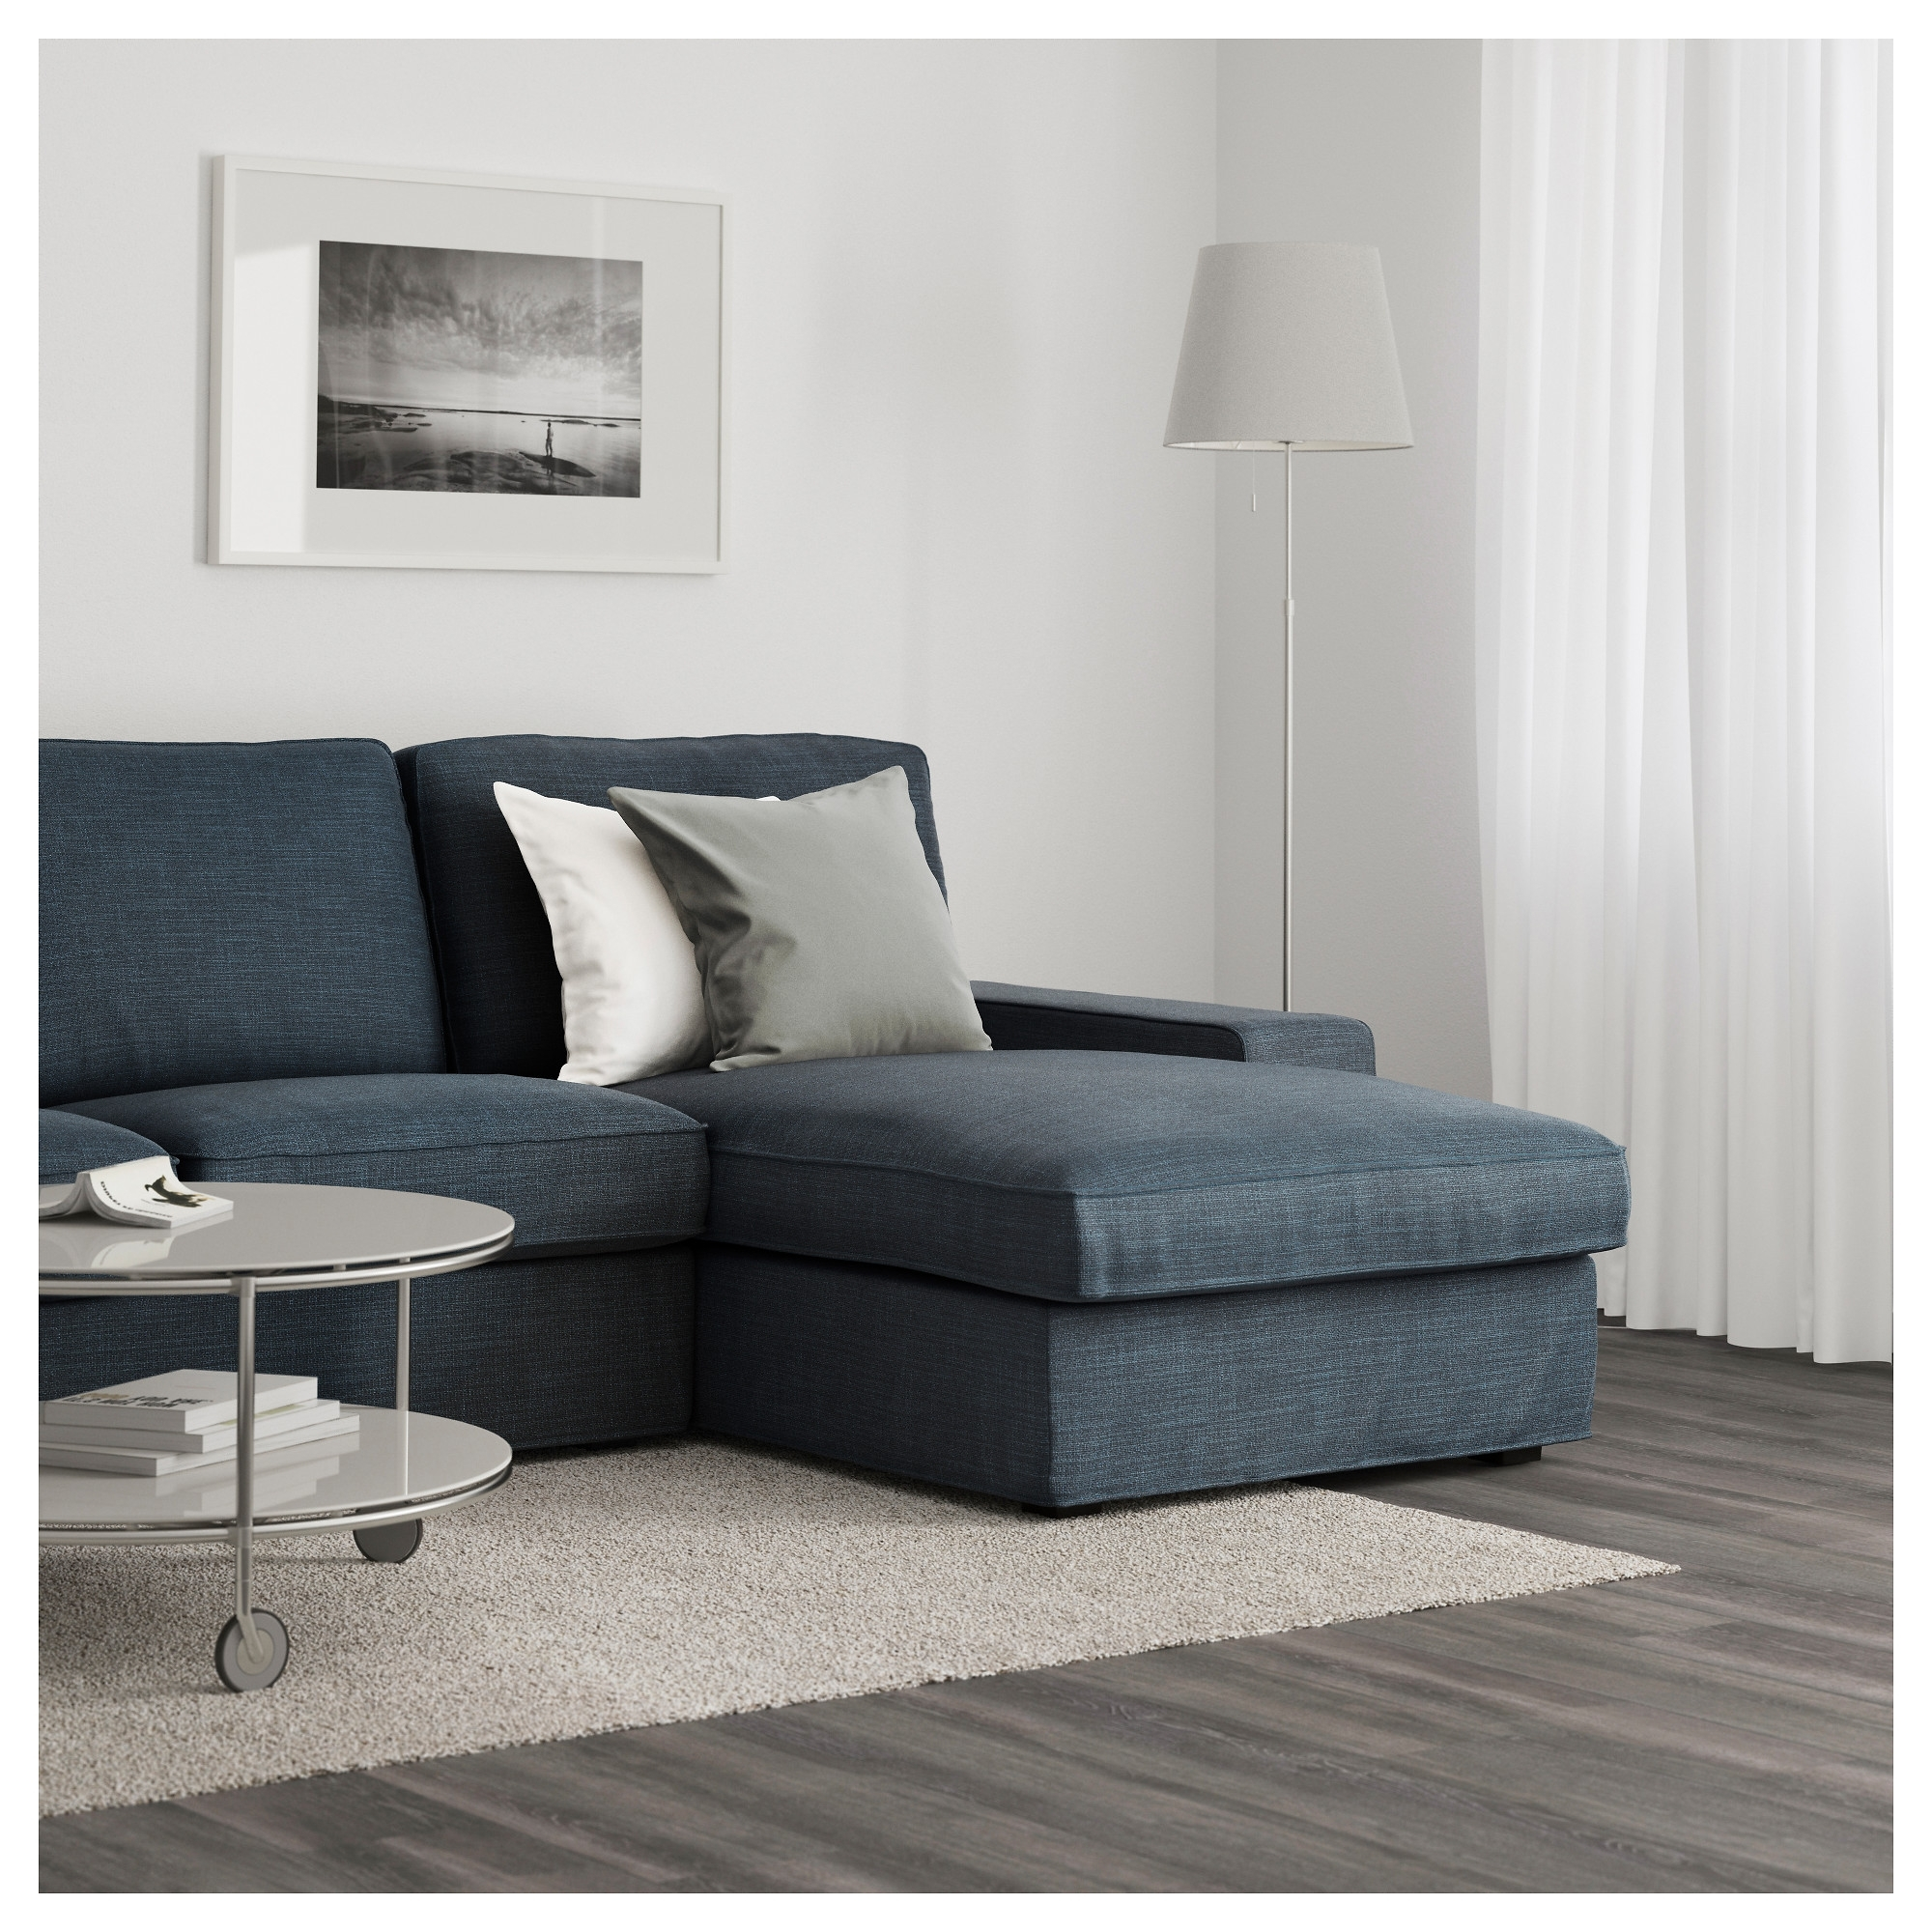 Kivik Sofa – With Chaise/hillared Beige – Ikea Regarding Widely Used Ikea Kivik Chaises (View 11 of 15)